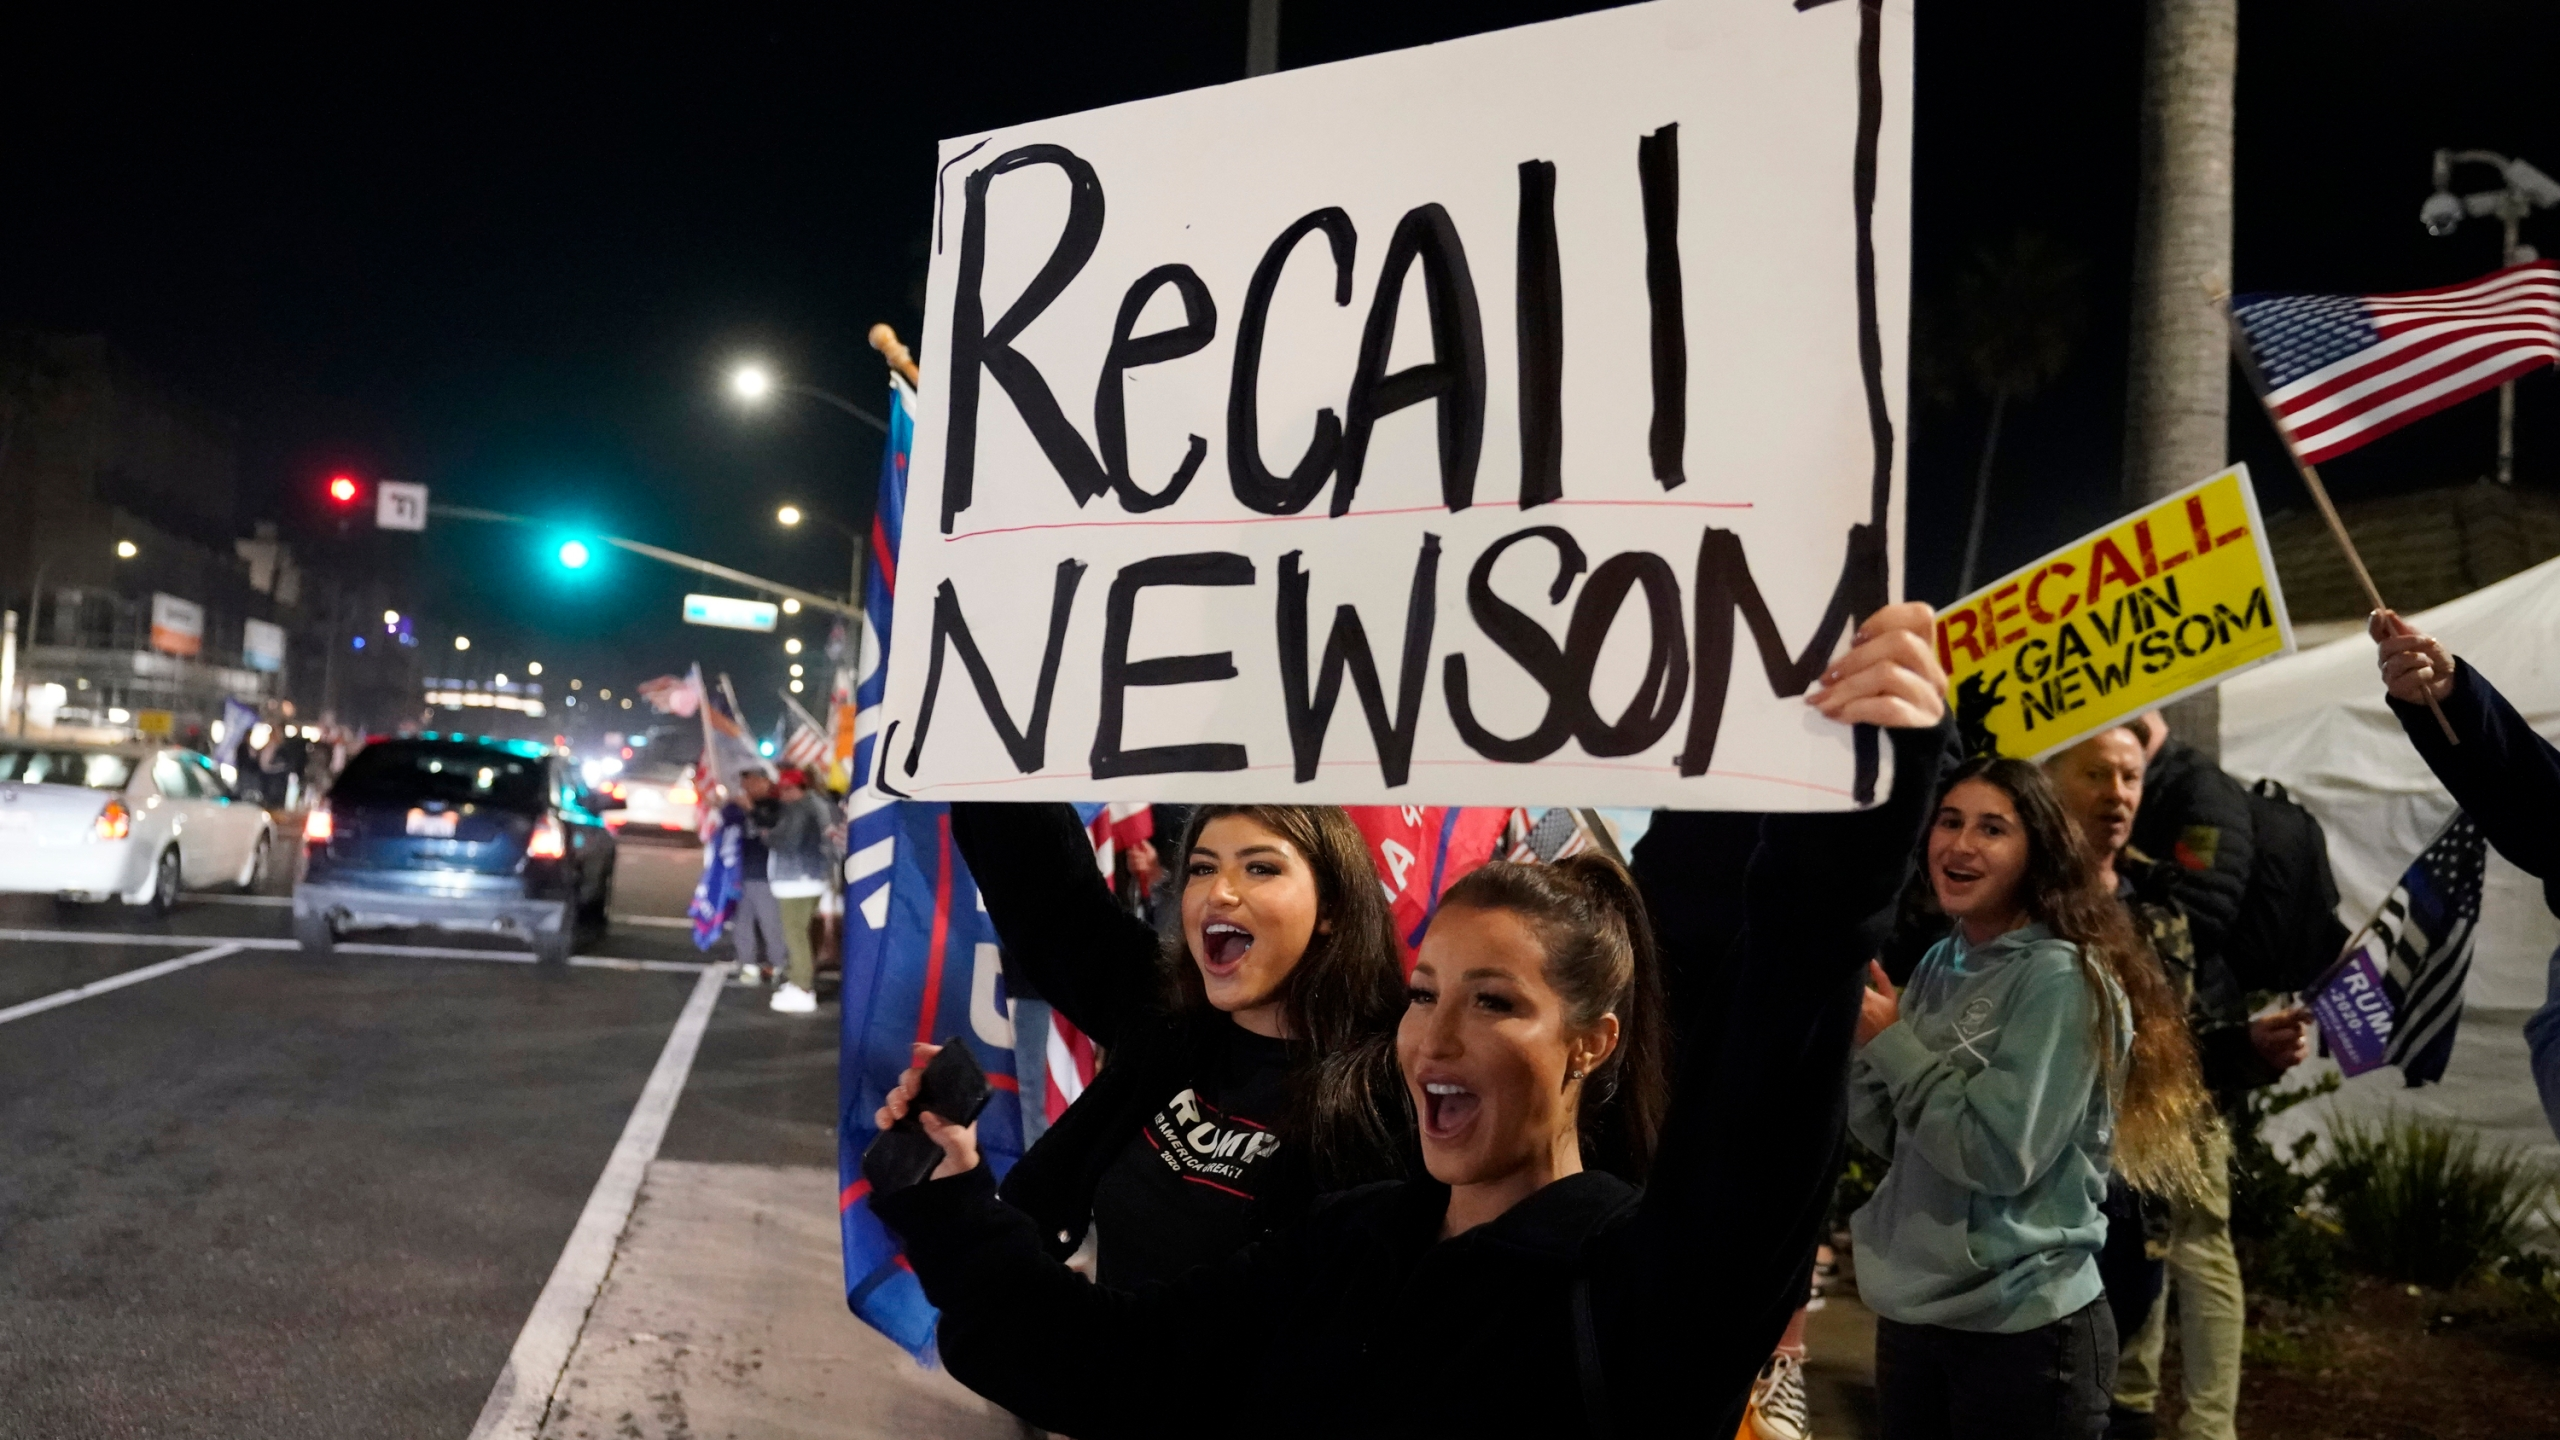 In this Saturday, Nov. 21, 2020, file photo, demonstrators shout slogans while carrying a sign calling for a recall on Gov. Gavin Newsom during a protest against a stay-at-home order amid the COVID-19 pandemic in Huntington Beach. (AP Photo/Marcio Jose Sanchez, File)